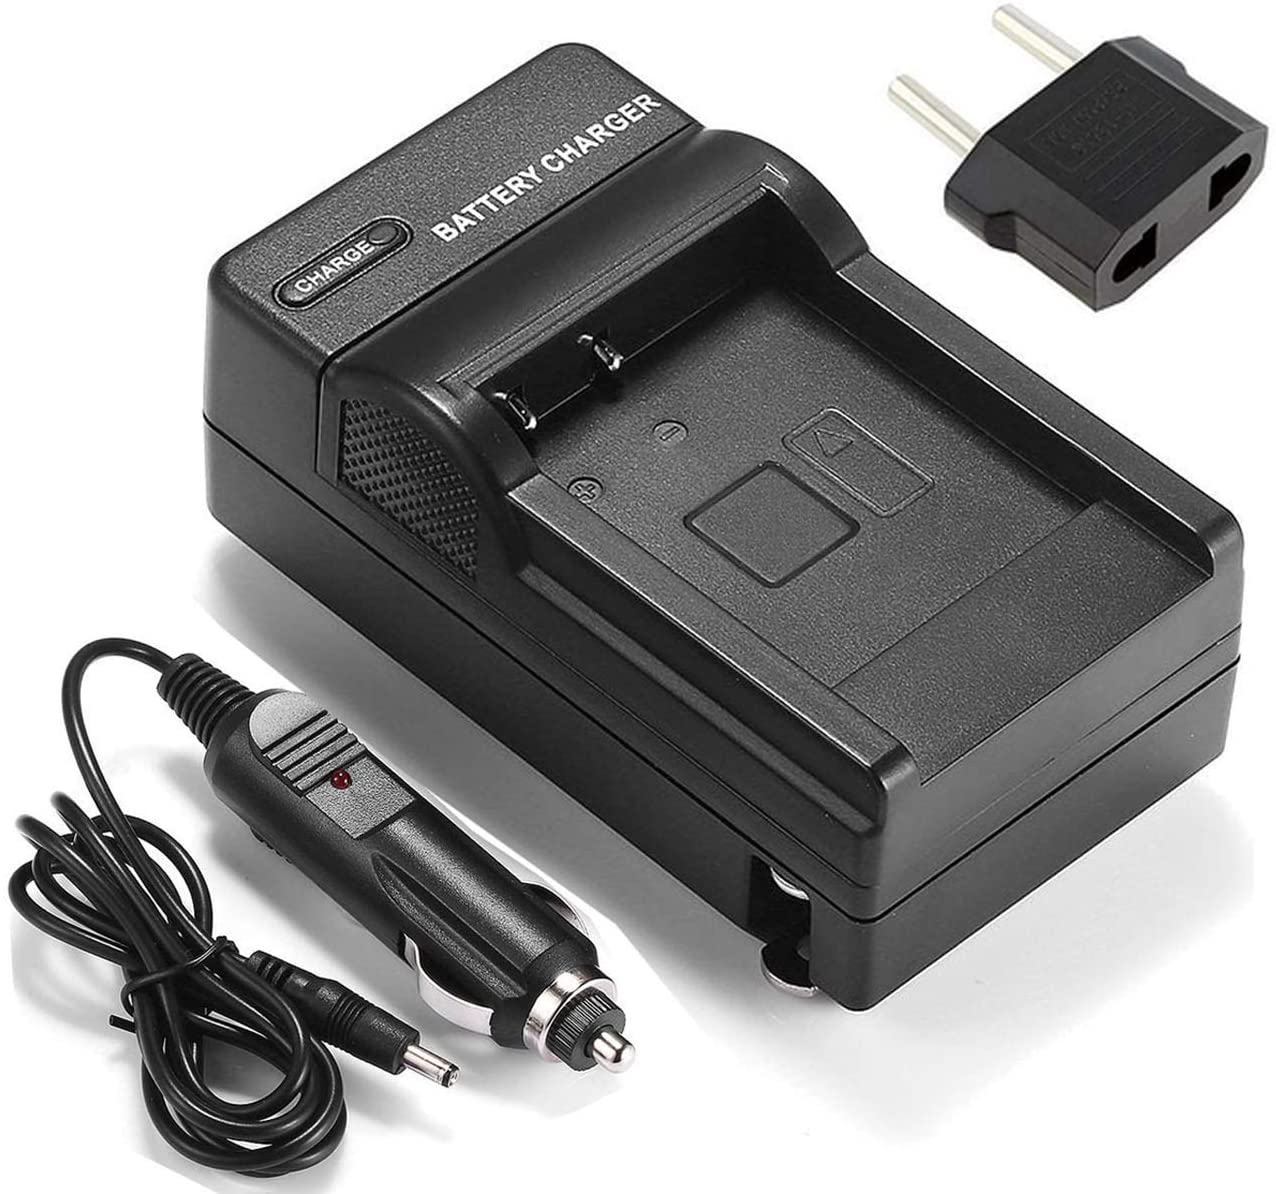 SCD71 SCD75 SCD73 LCD USB Battery Charger for Samsung SCD70 SCD77 Digital Video Camcorder